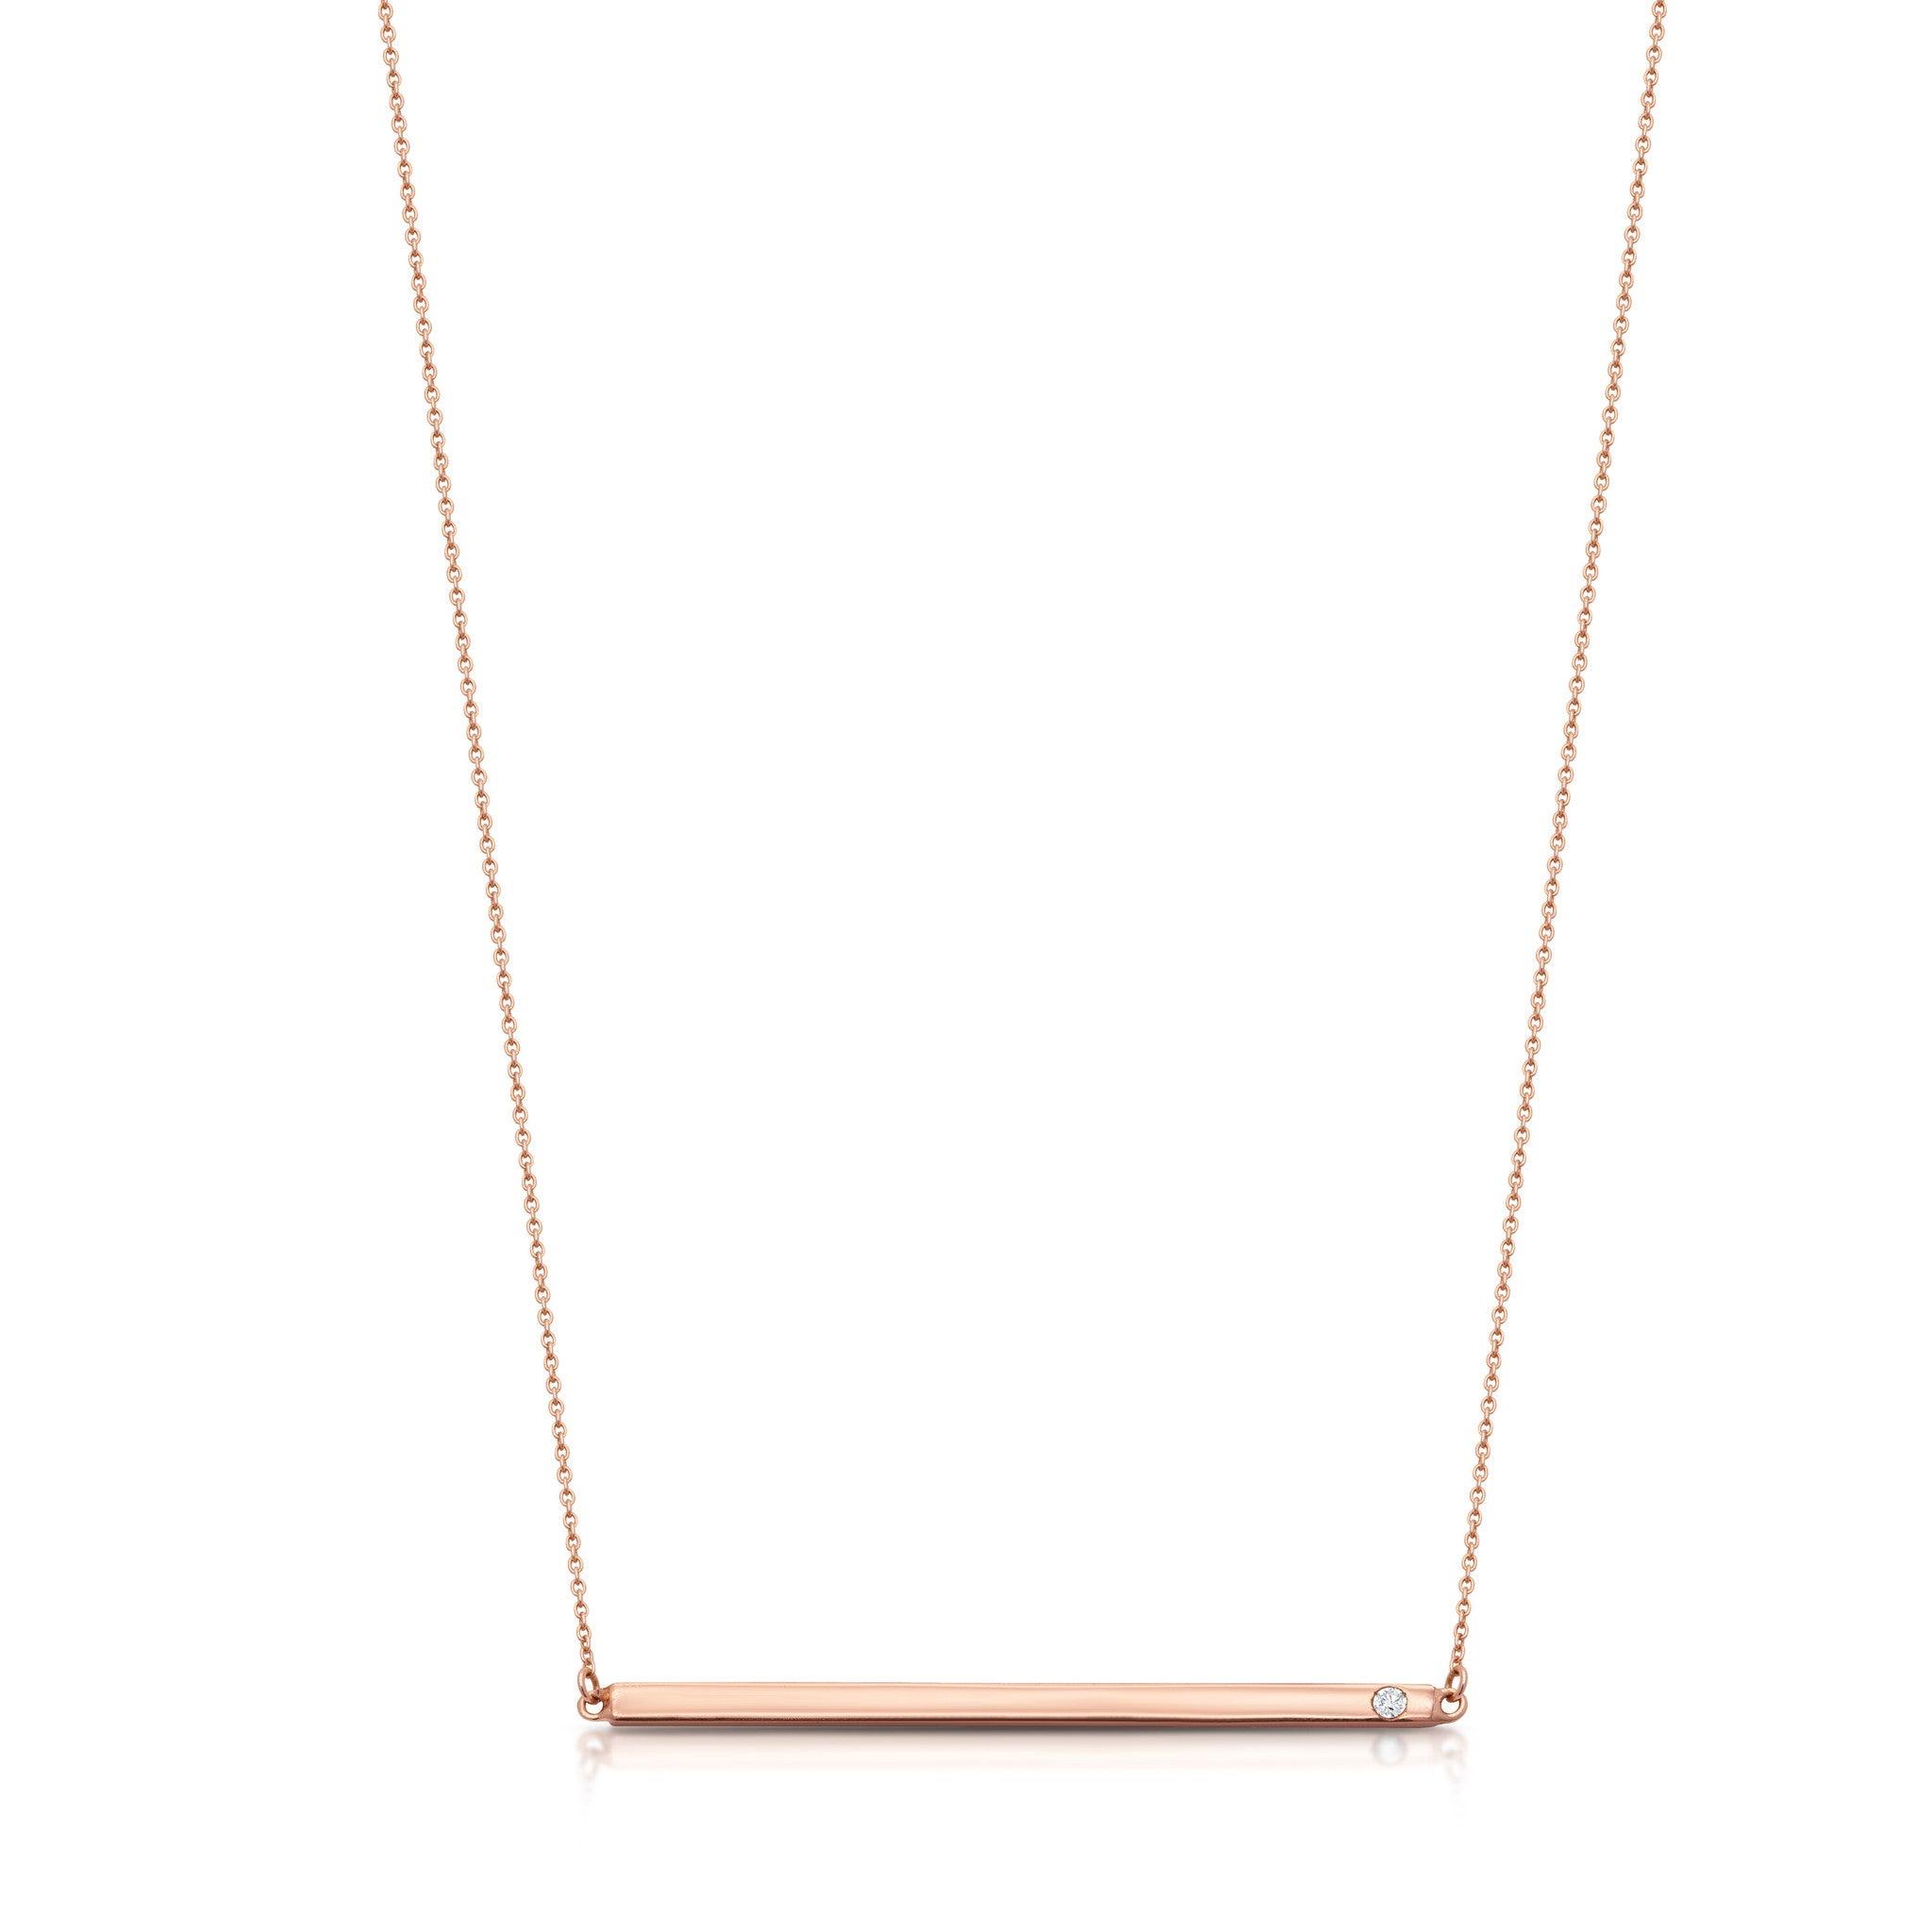 bar pendant products necklace jewelry frolick pavia